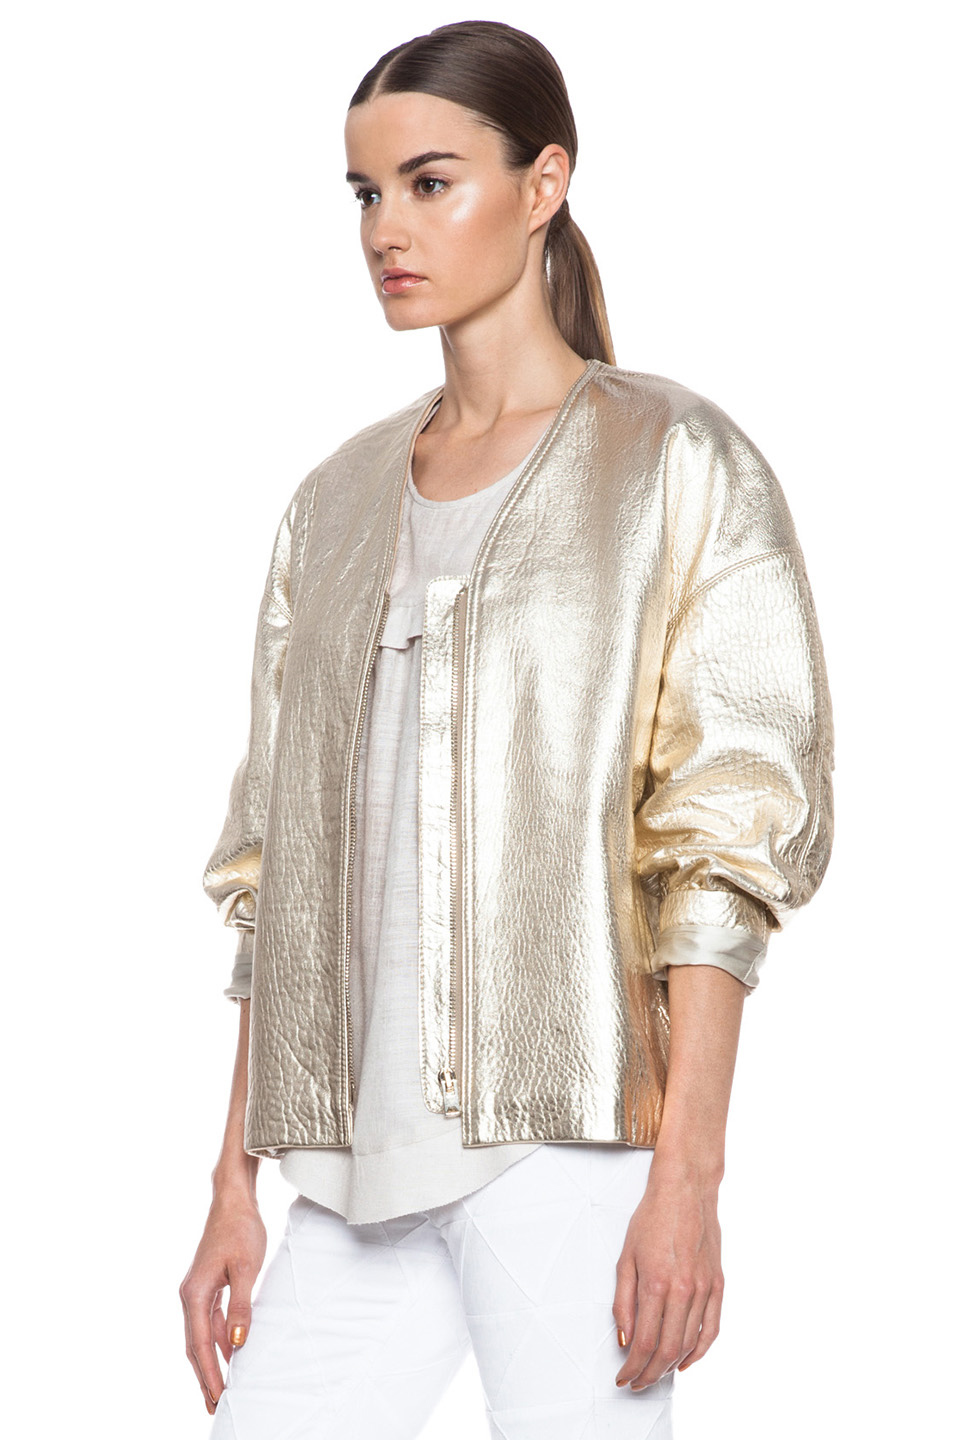 Camelia lambskin leather jacket in gold